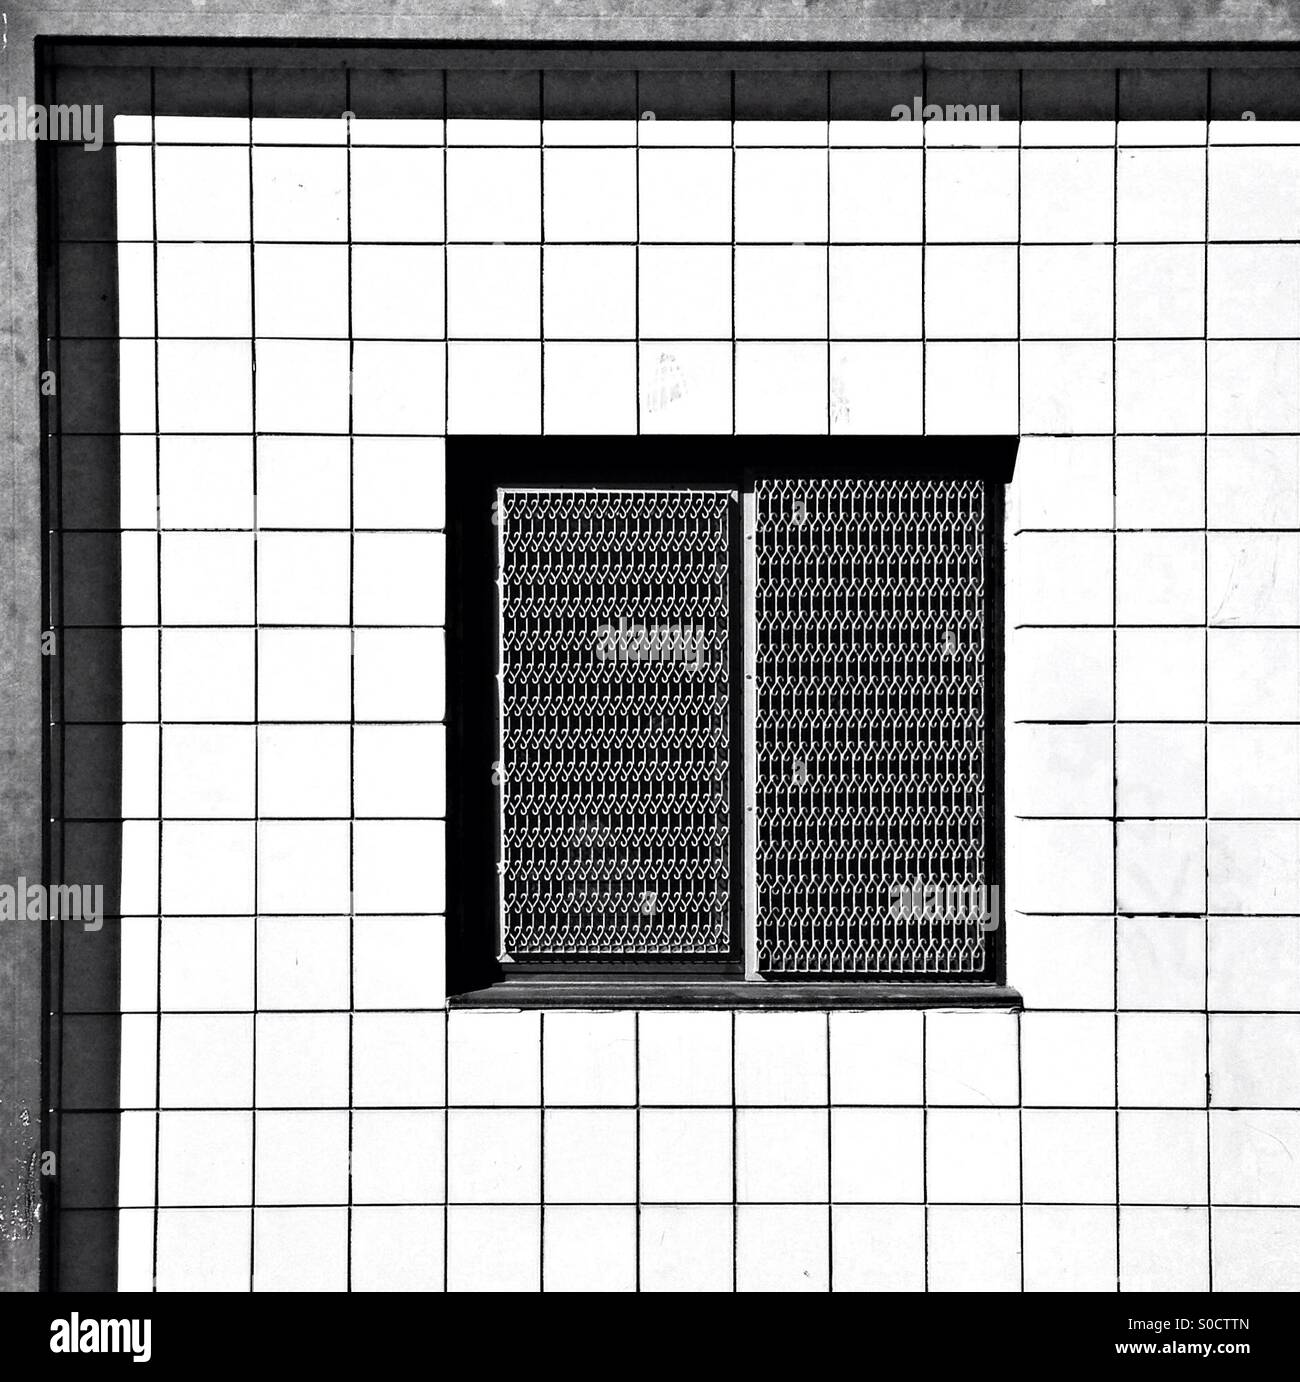 Abstract pattern of black and white squares and right-angles, taken from a section of a non-commercial building, - Stock Image